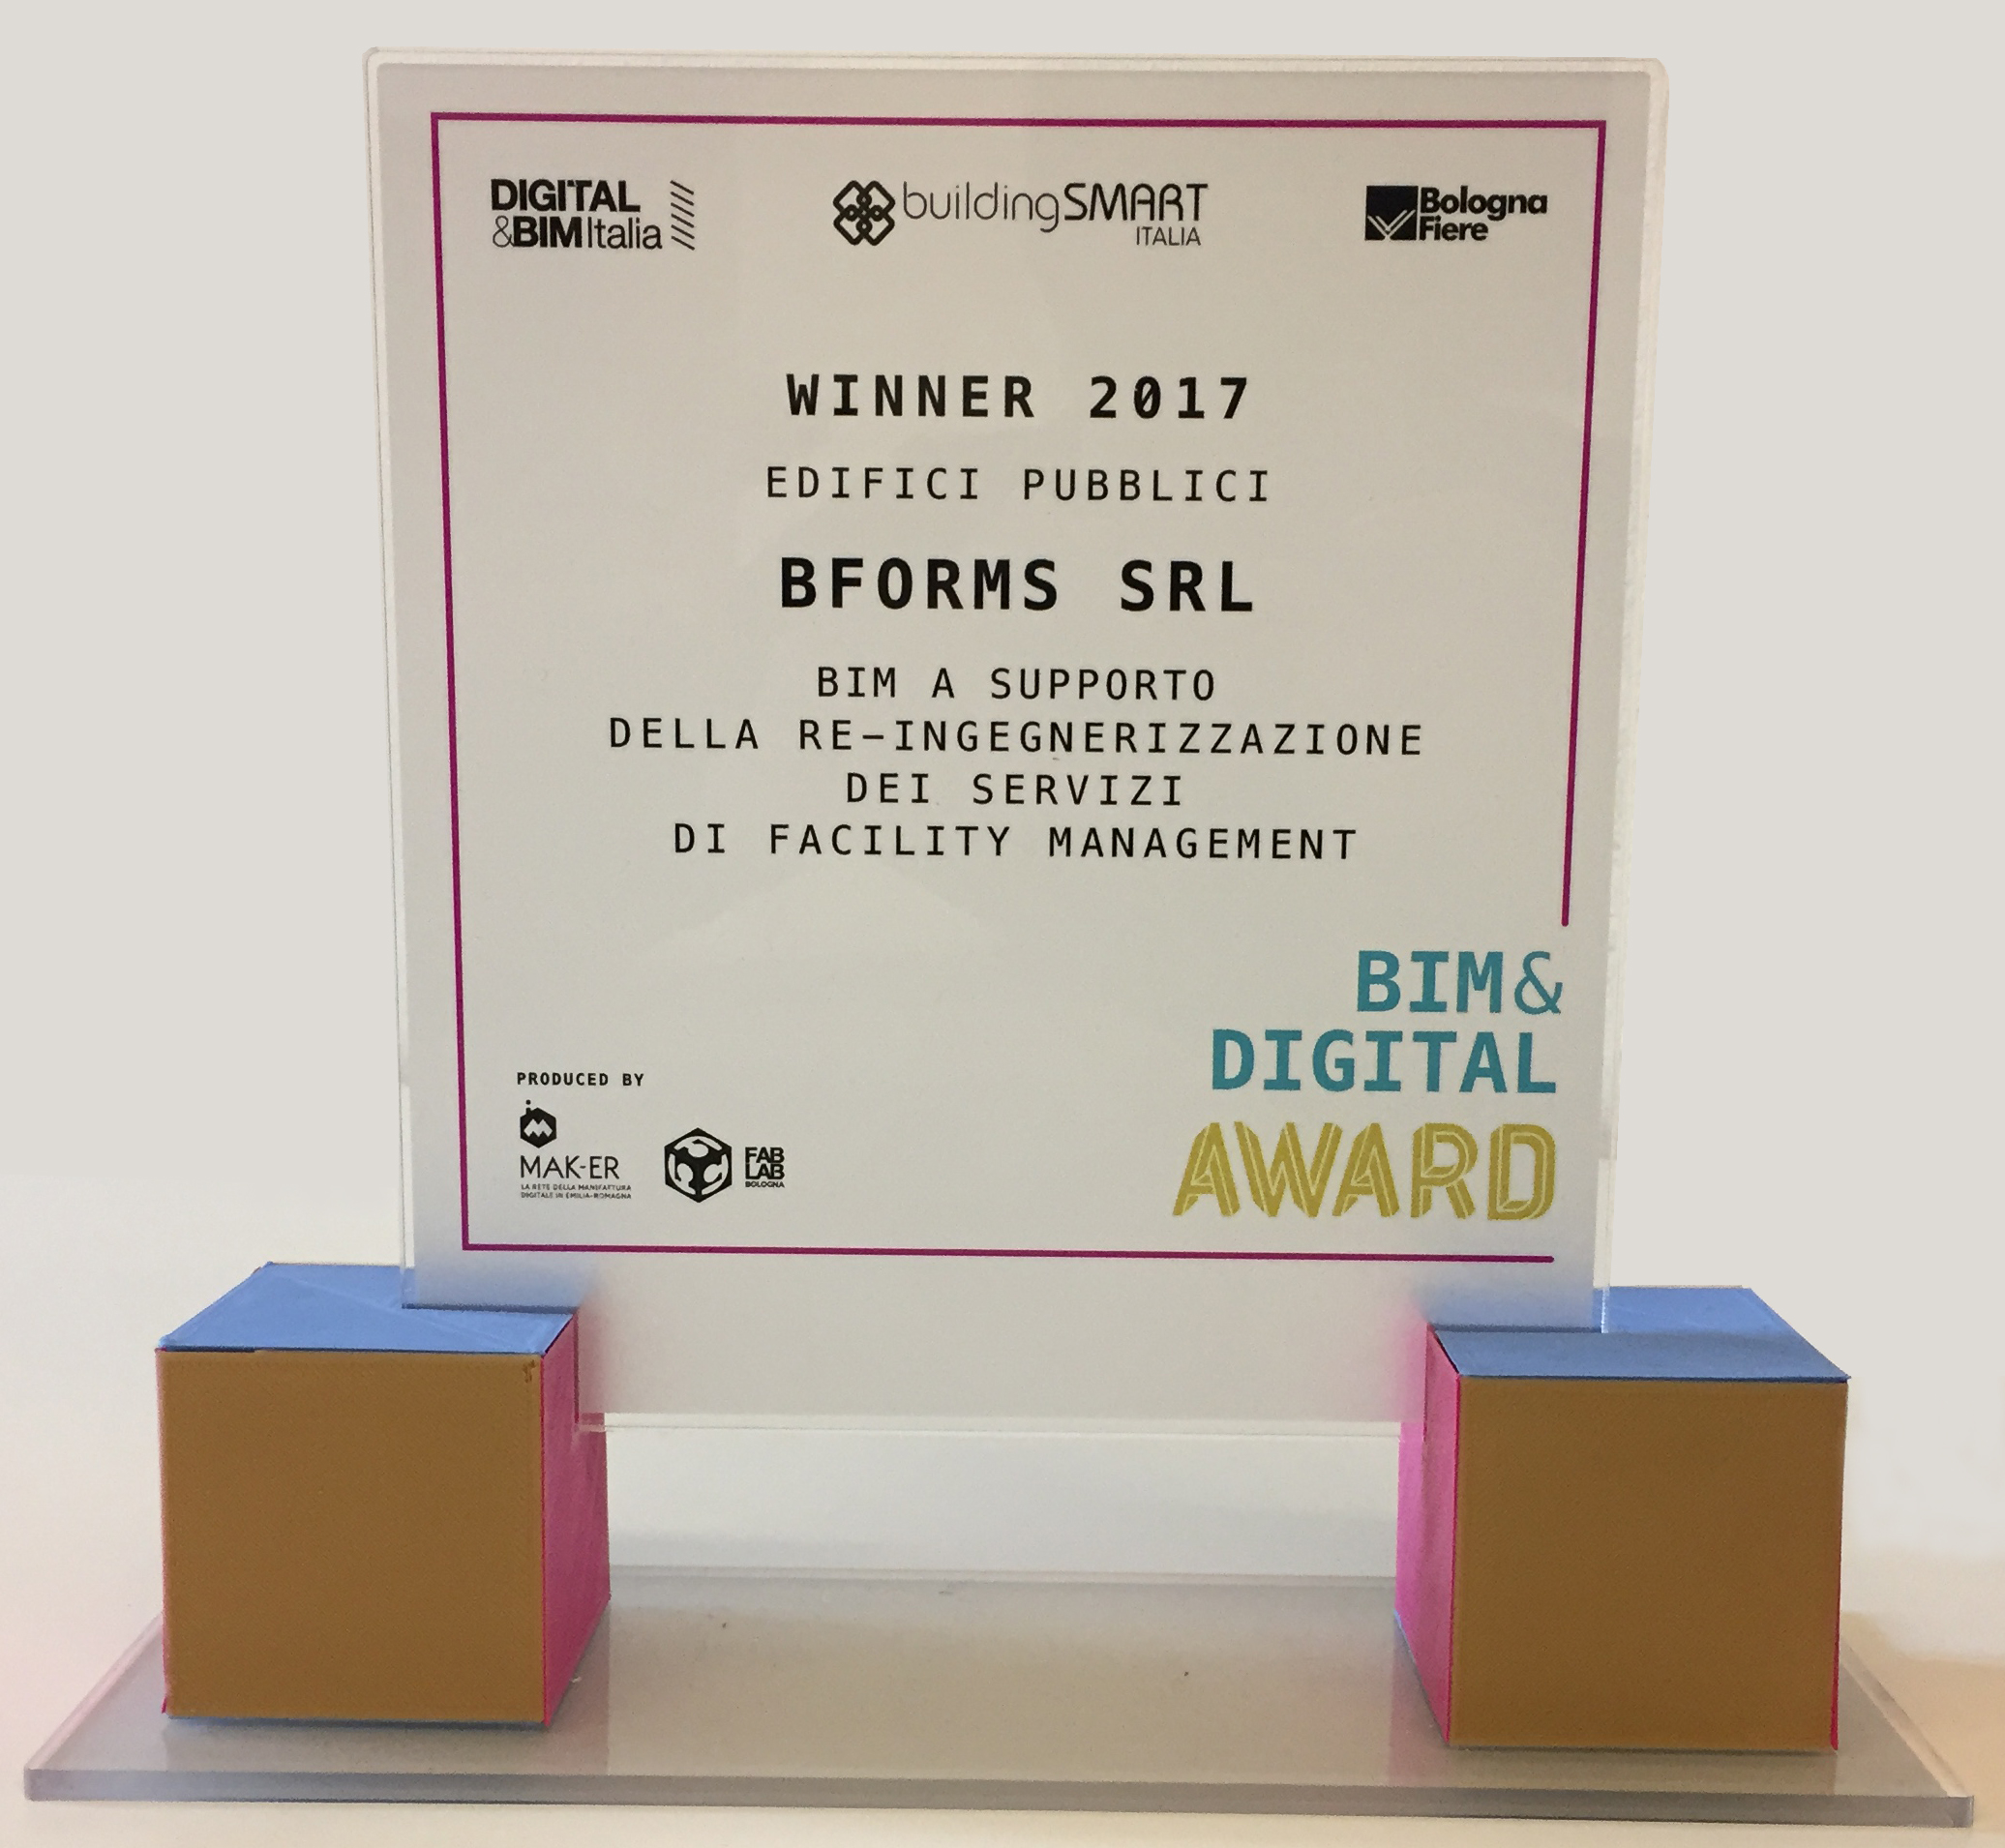 BFORMS BIM AWARD.jpg